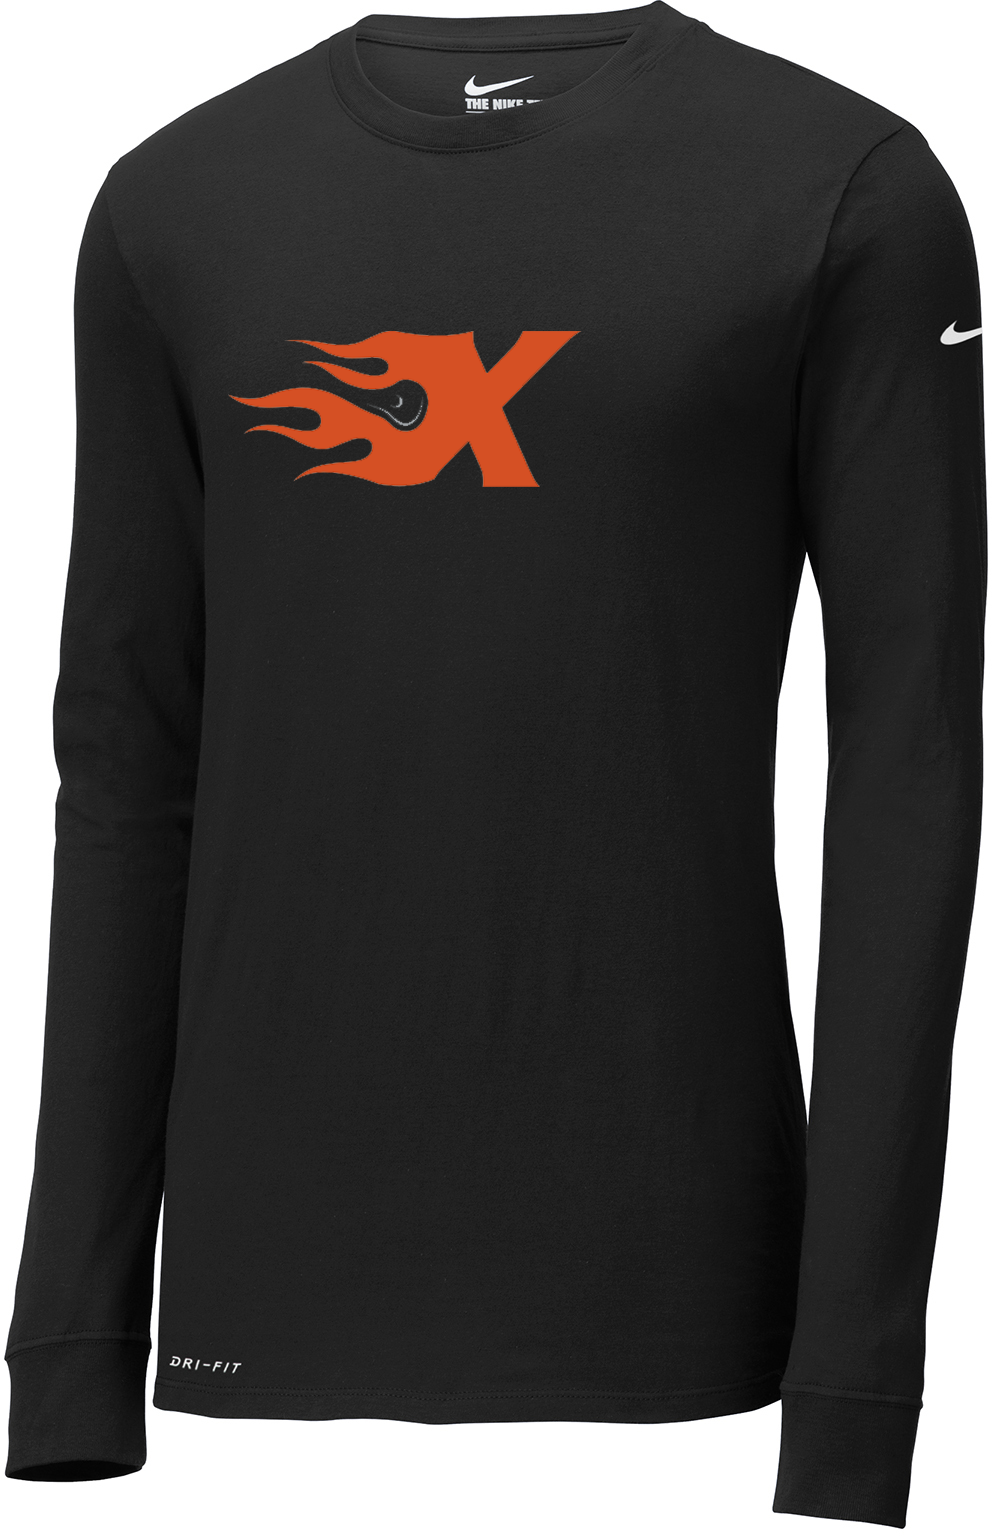 Xtreme Lacrosse Black Nike Dri-FIT Long Sleeve Tee